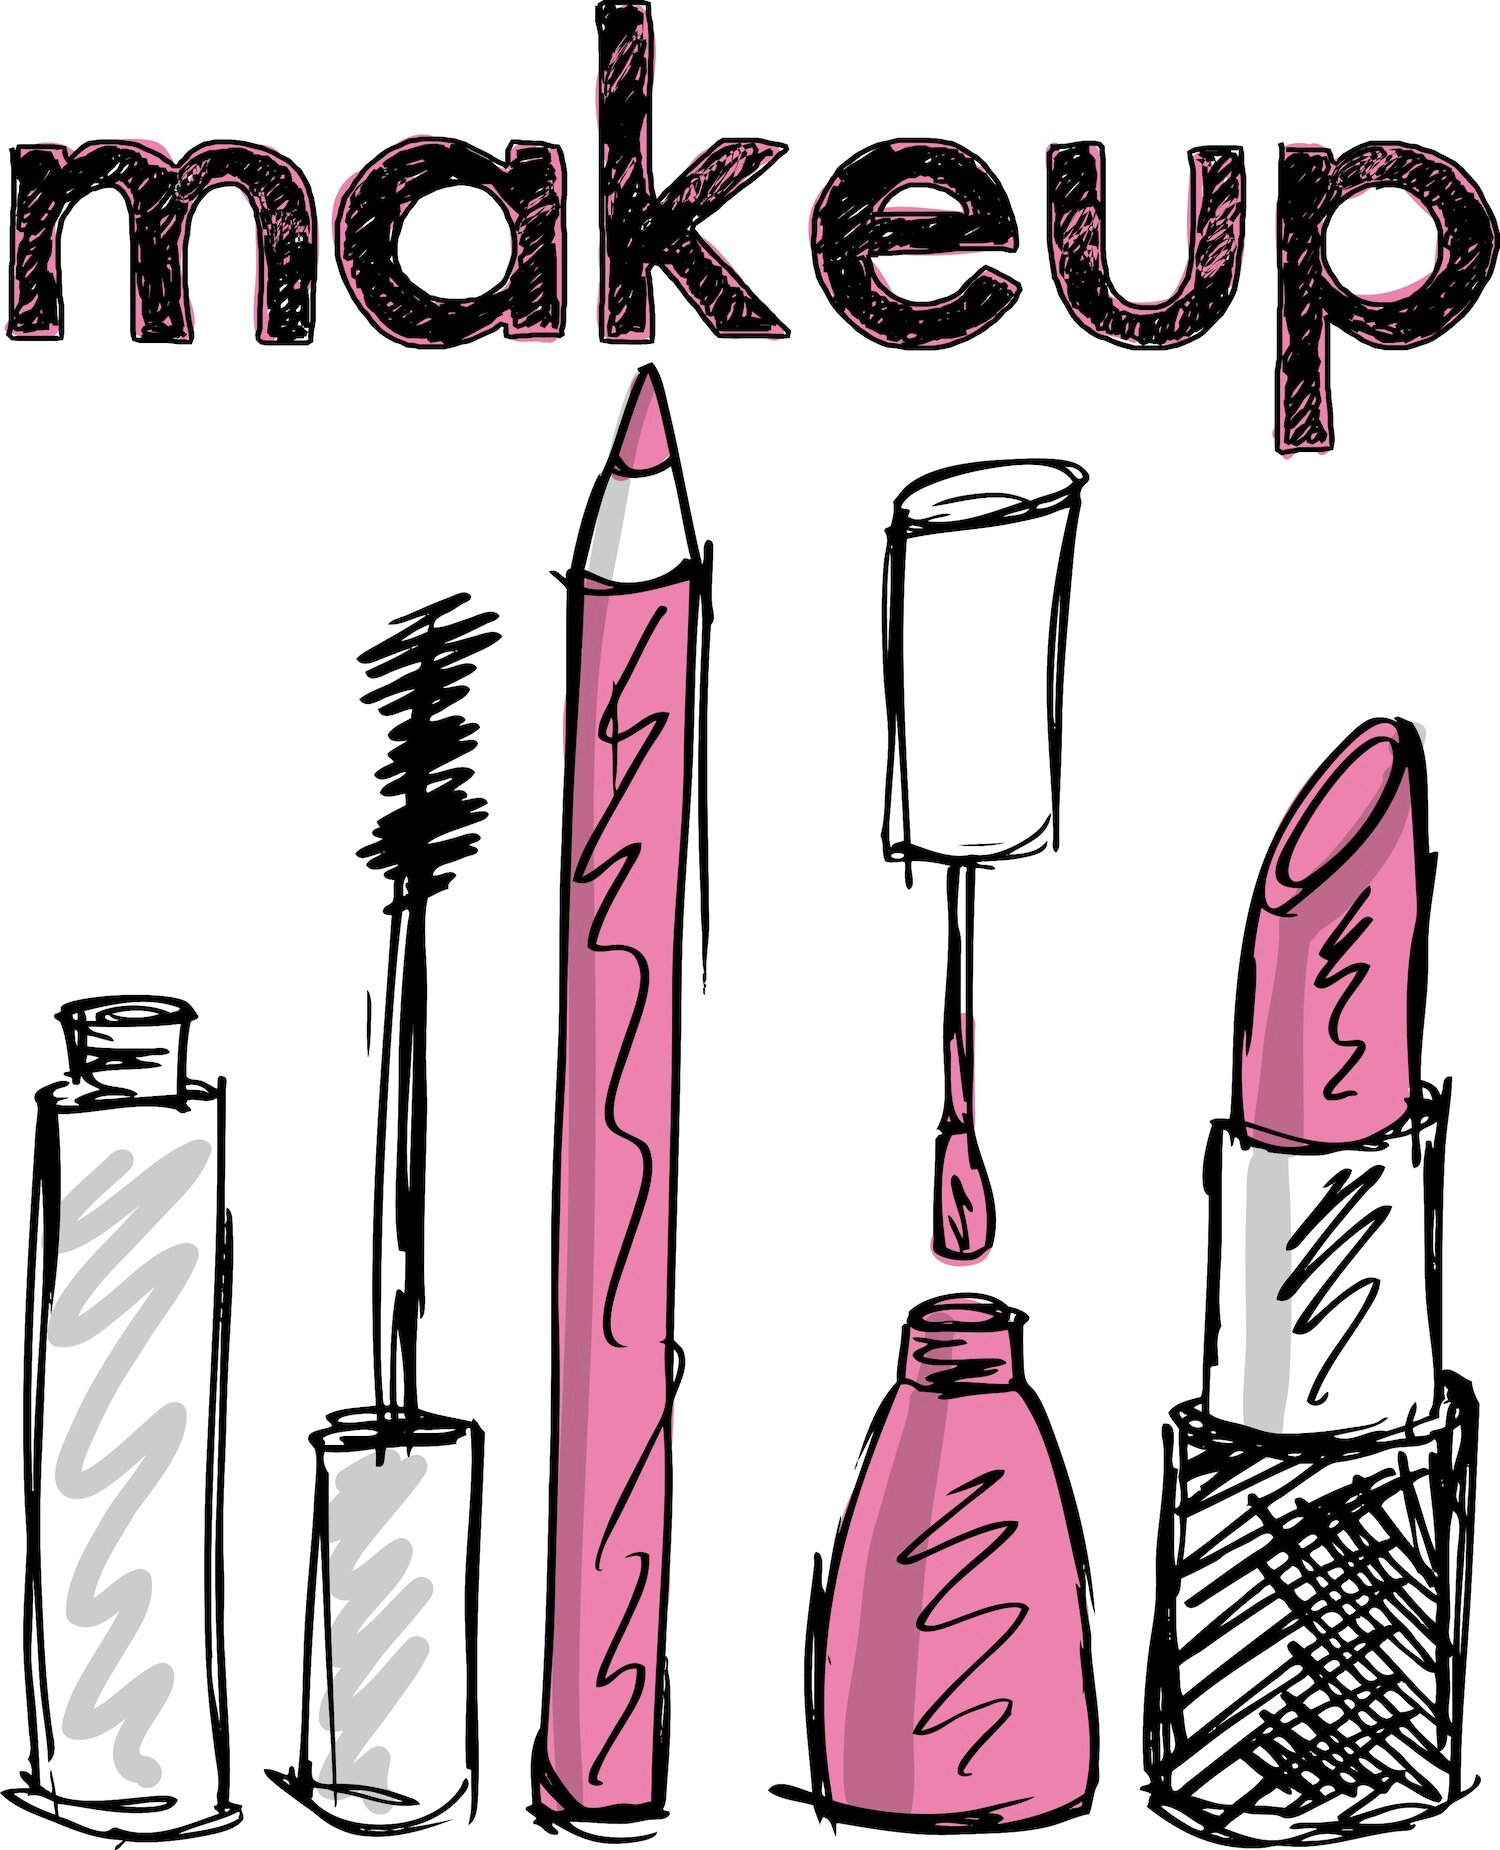 Mary kay clipart graphics picture library stock Mary Kay Clipart Group with 57+ items picture library stock